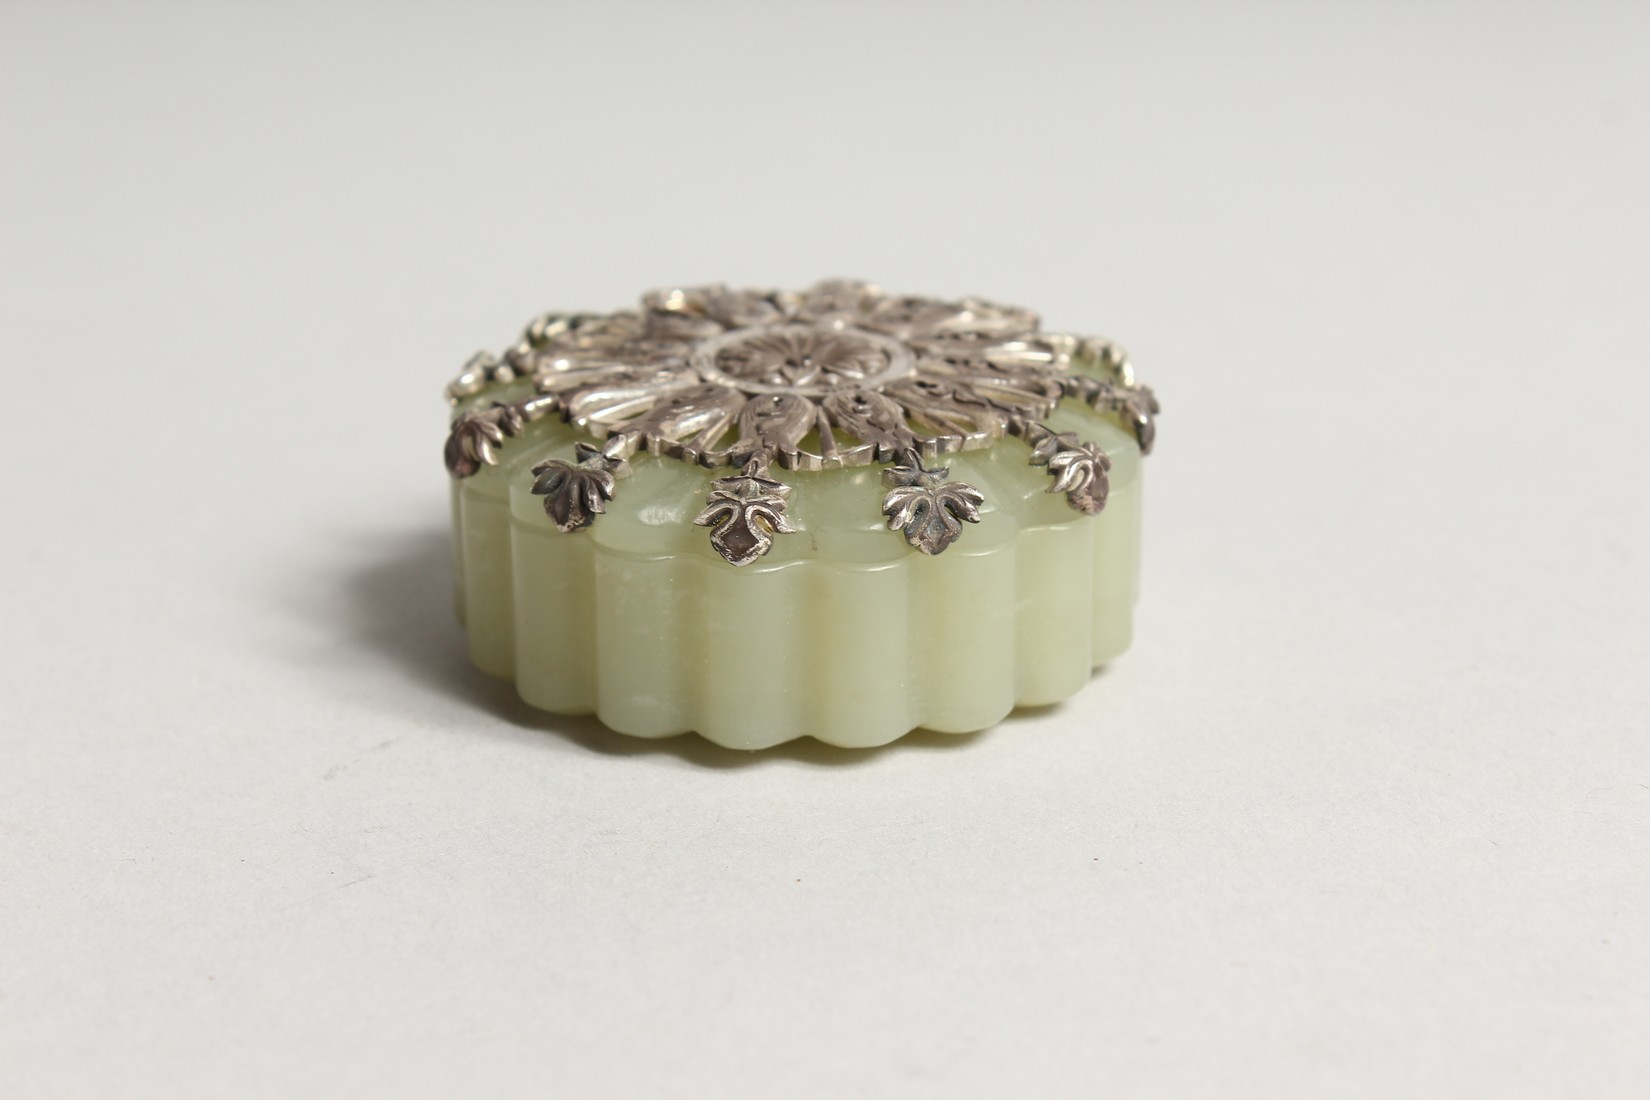 A GOOD JADE AND SILVER TOP BOX AND COVER the top stamped .925 and W. W. 84 2ins diameter. - Image 2 of 4